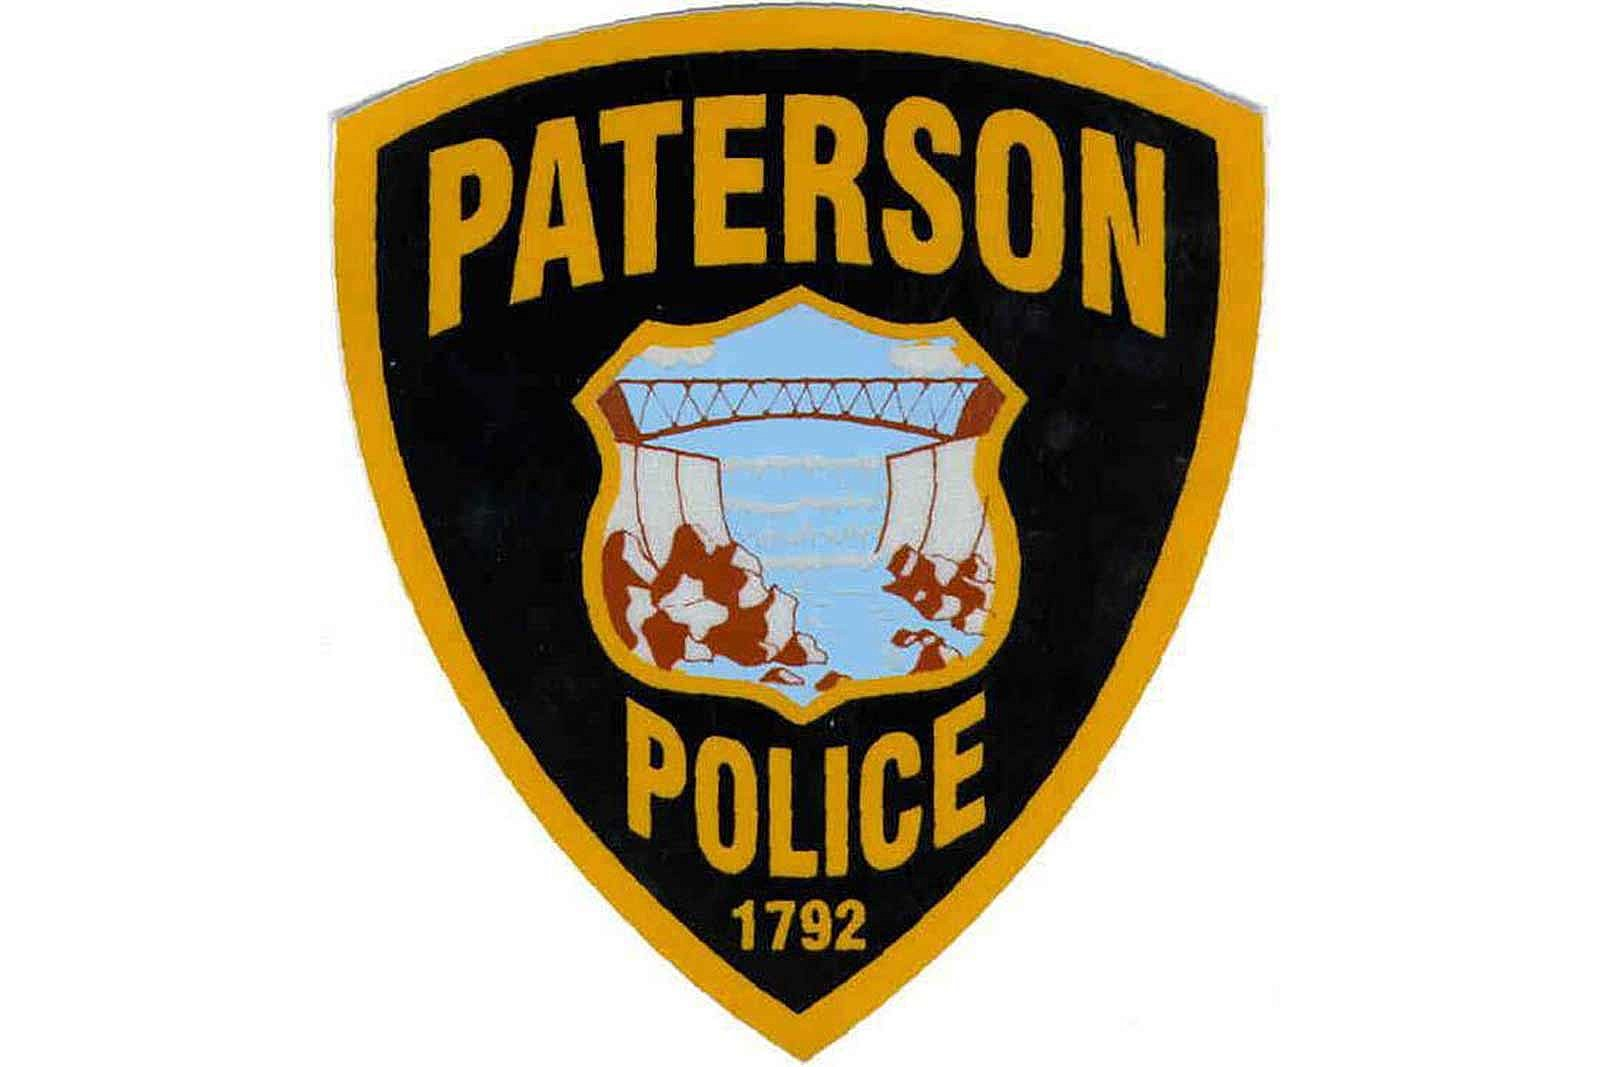 Another cop in Paterson pleads guilty in corruption conspiracy